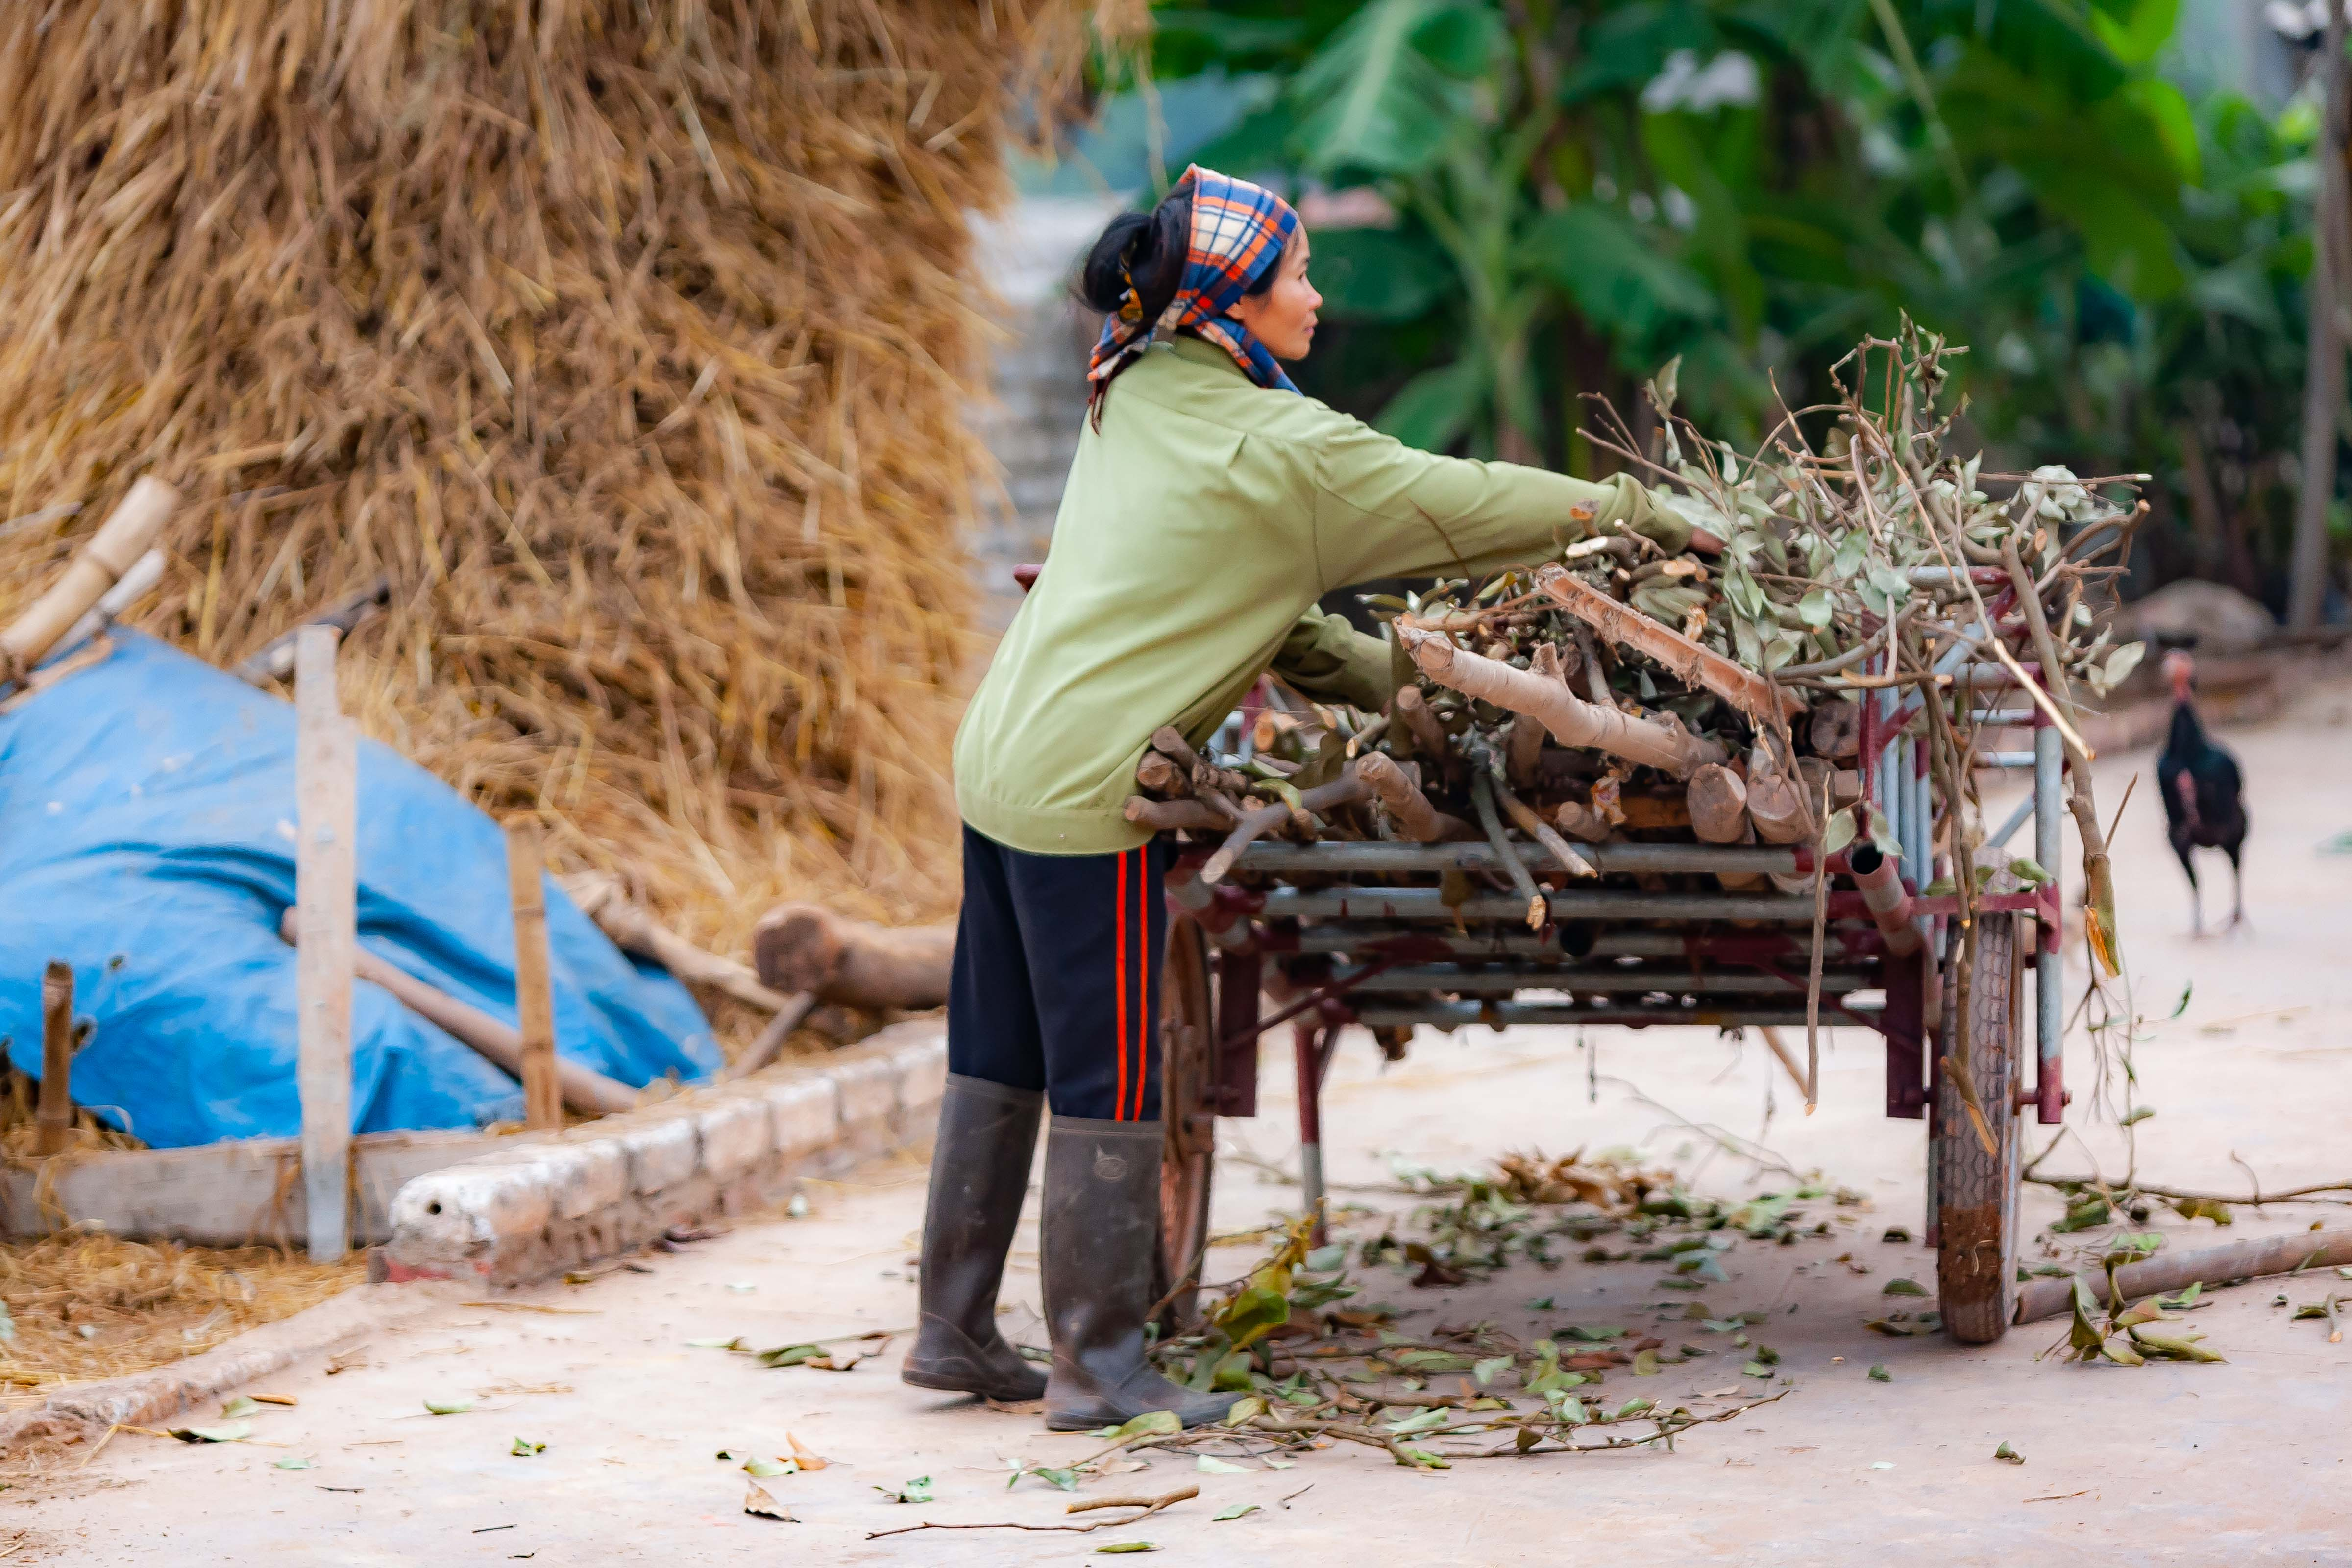 Vietnam, Bac Giang Prov, Wood Cart, 2010, IMG 4434